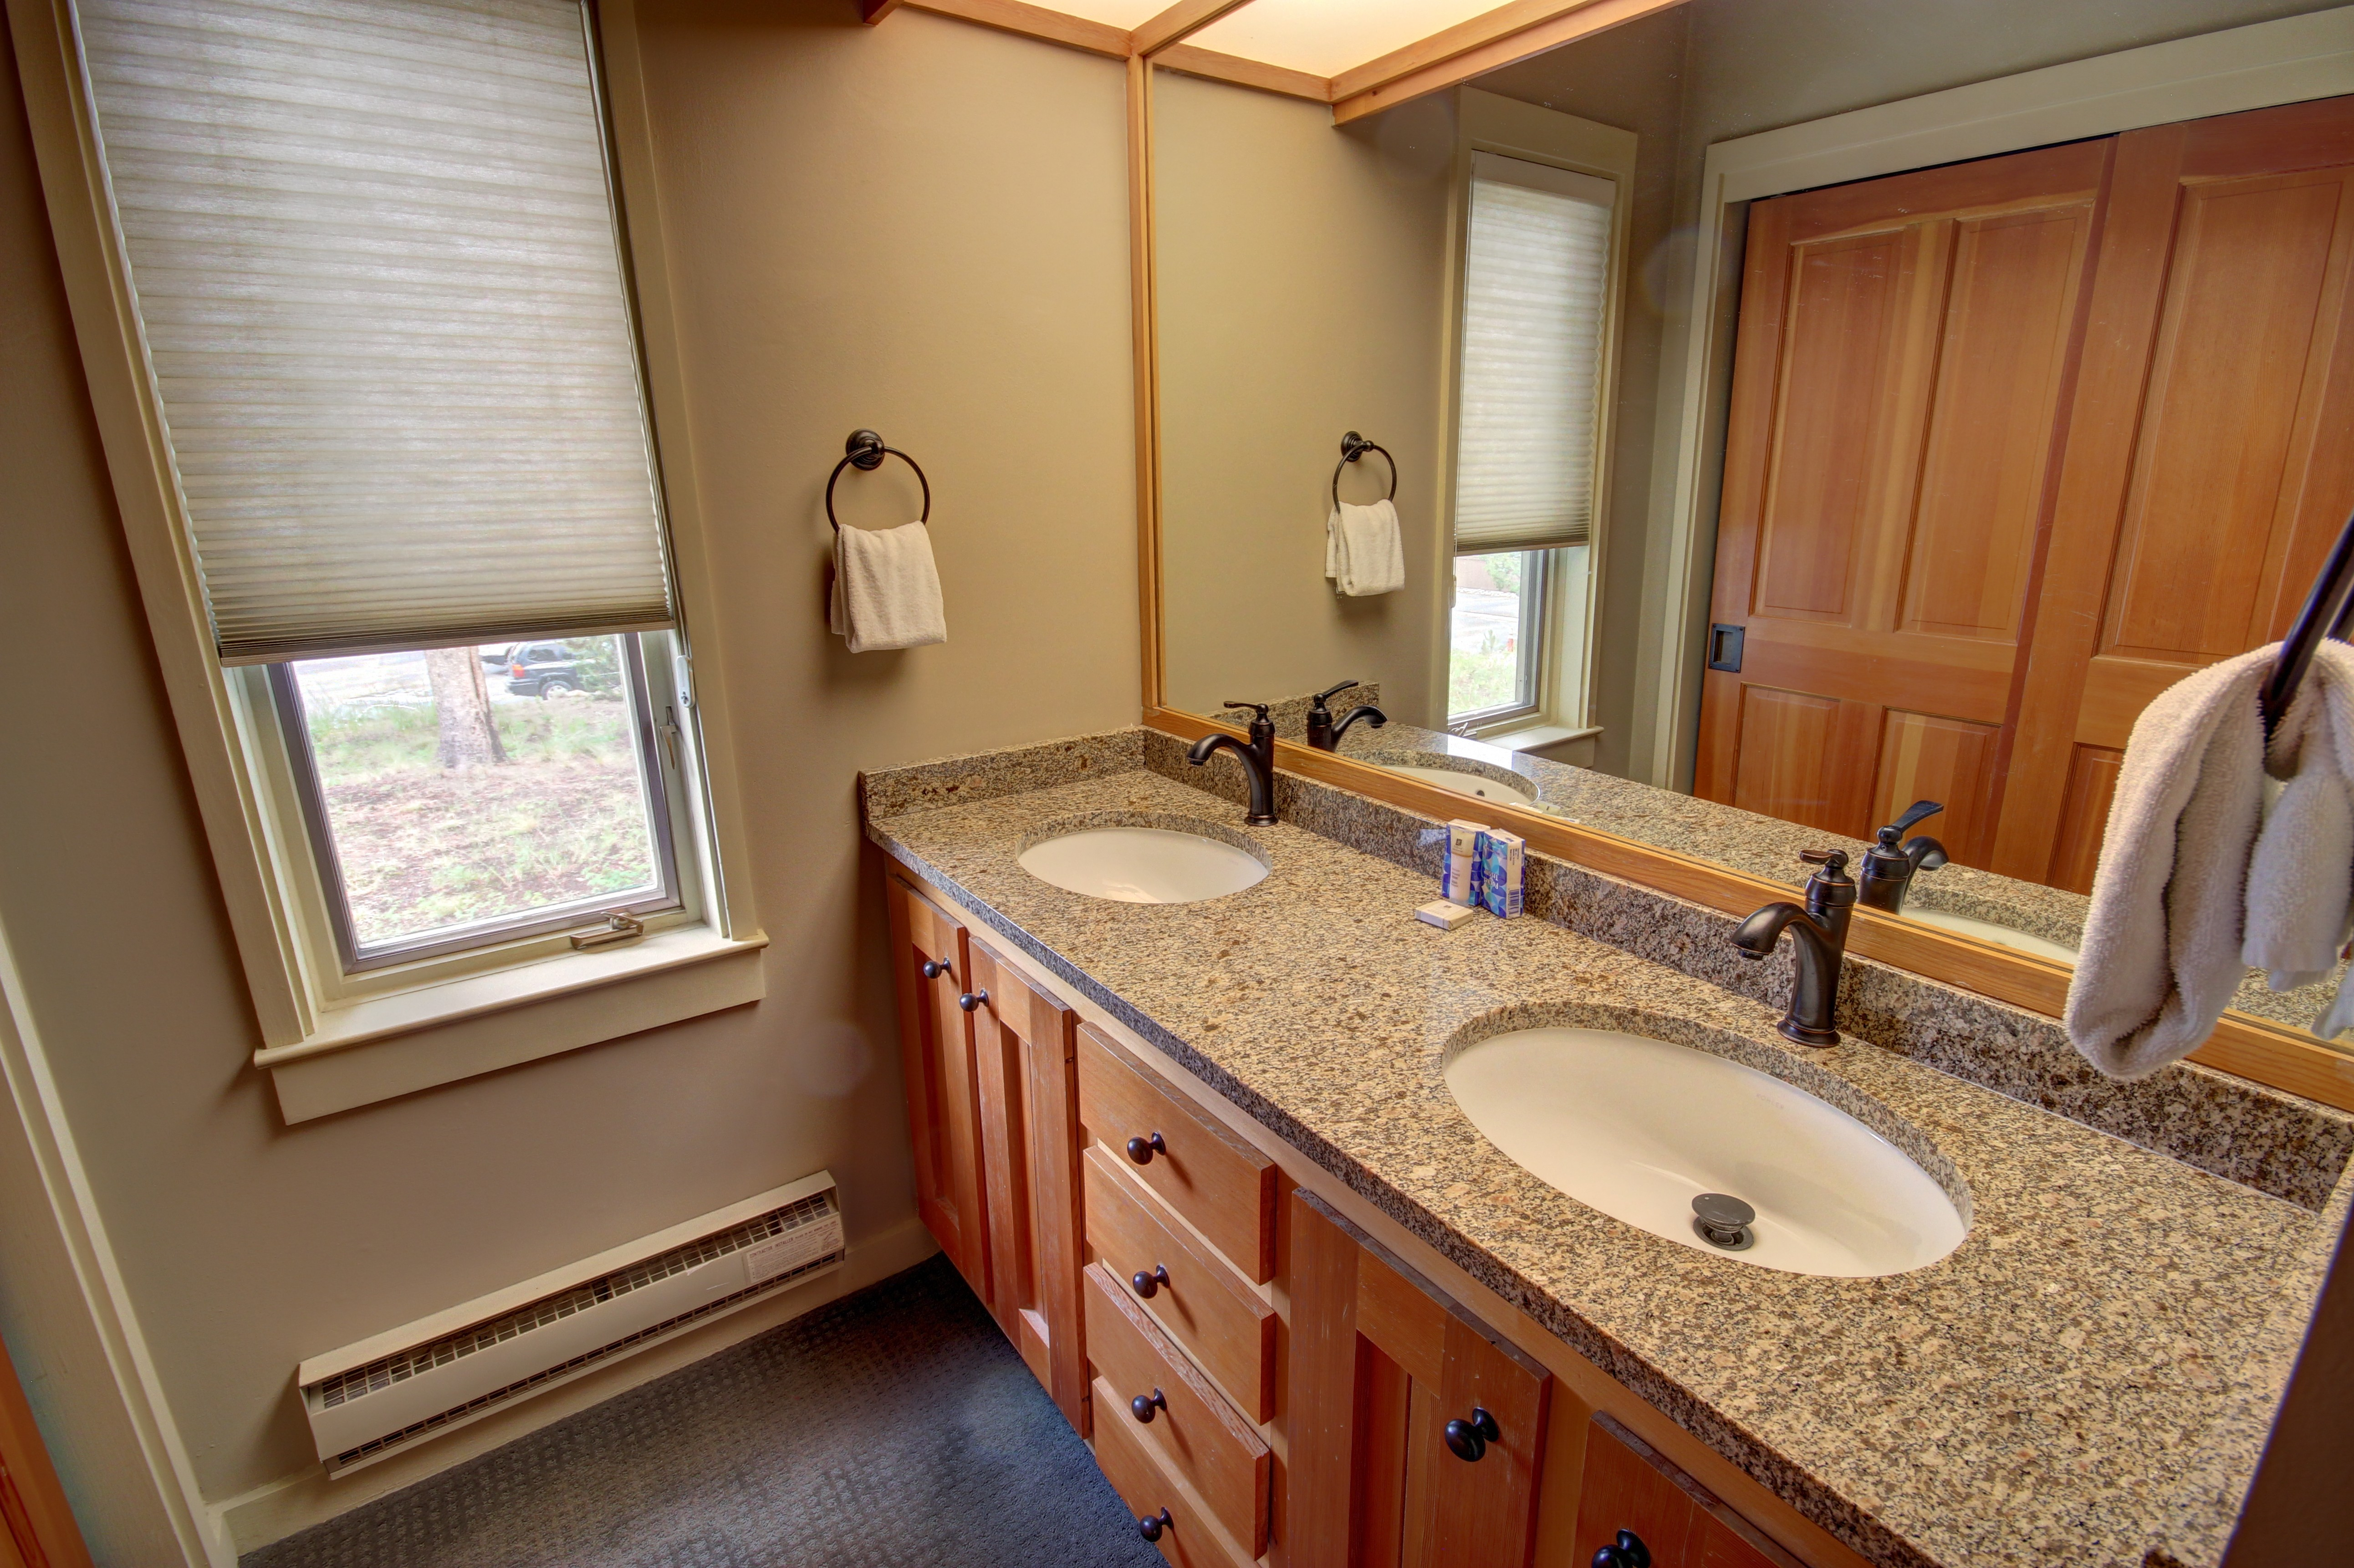 Bathroom with drawers and granite countertops